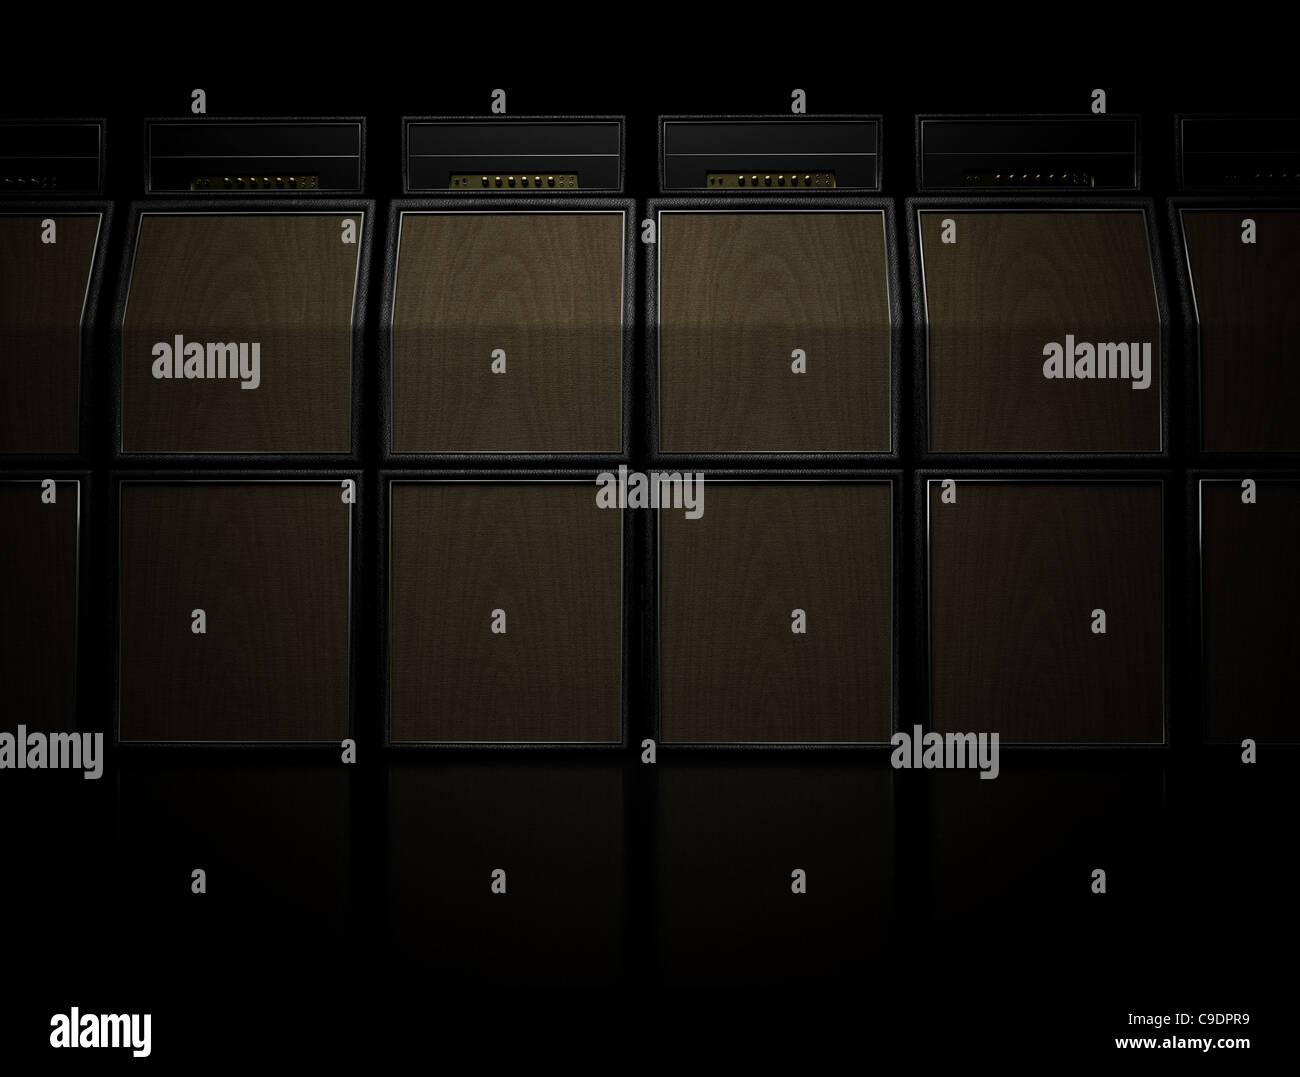 Stack Of Marshall Amps Stock Photos & Stack Of Marshall Amps Stock